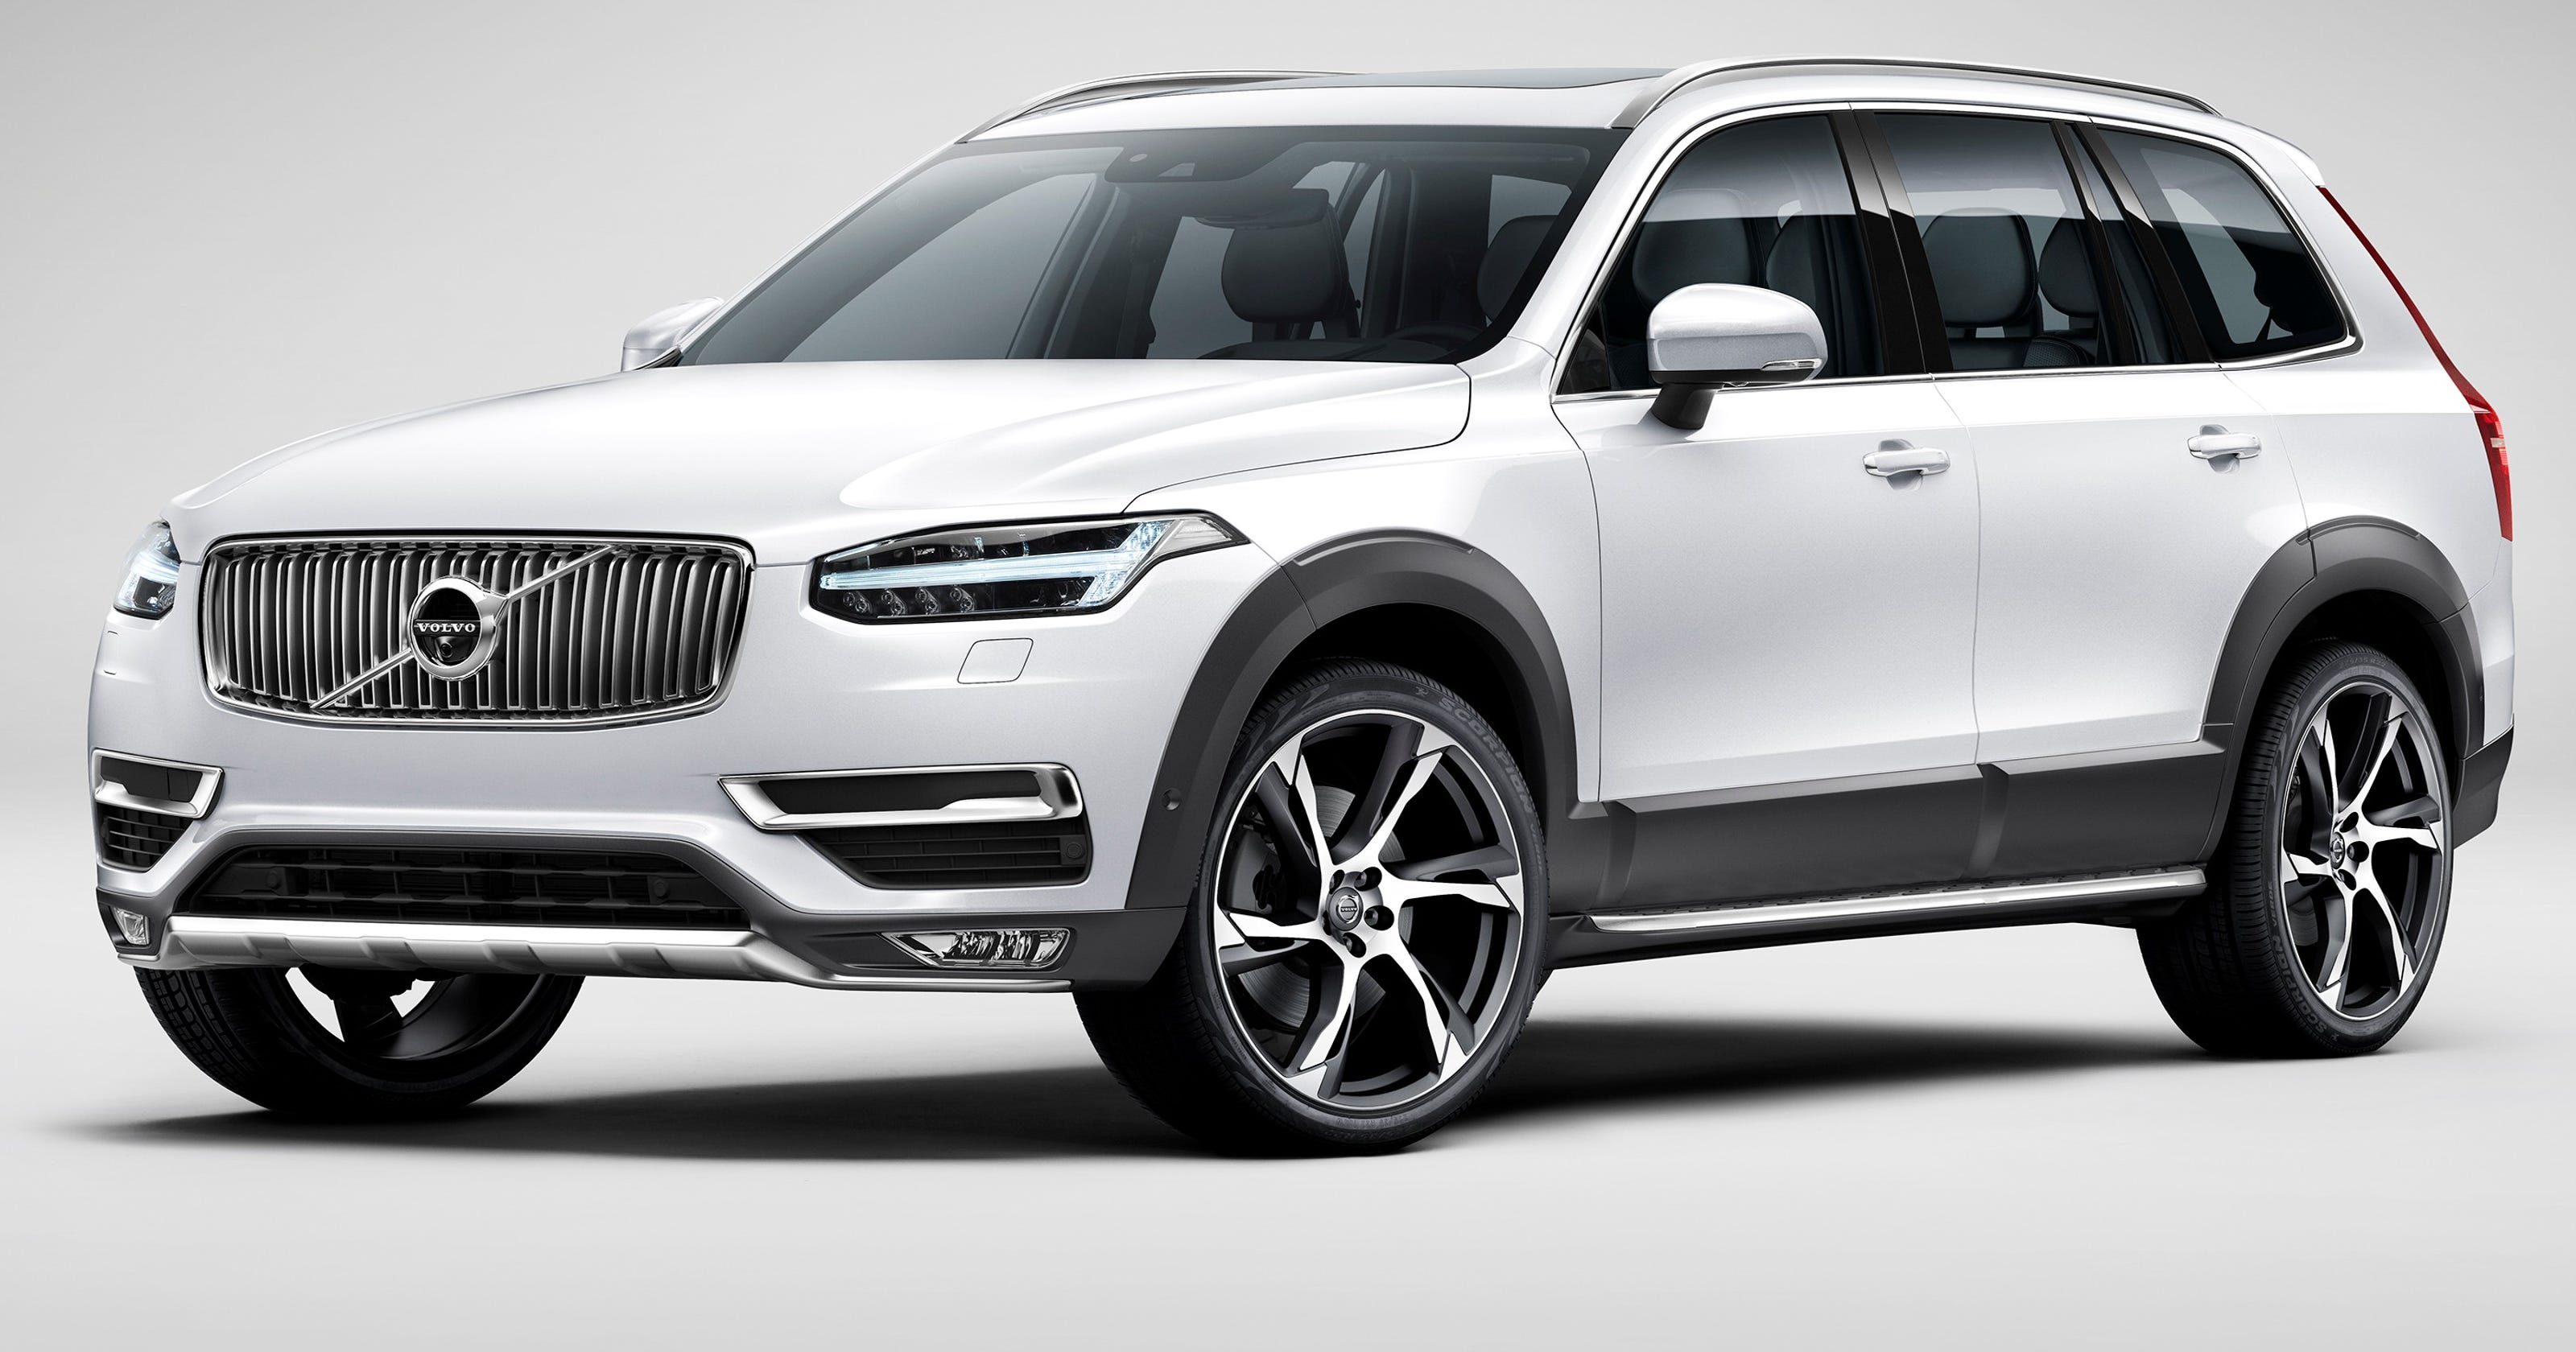 review volvo bills xc90 as world 39 s first 7 seat plug in suv. Black Bedroom Furniture Sets. Home Design Ideas